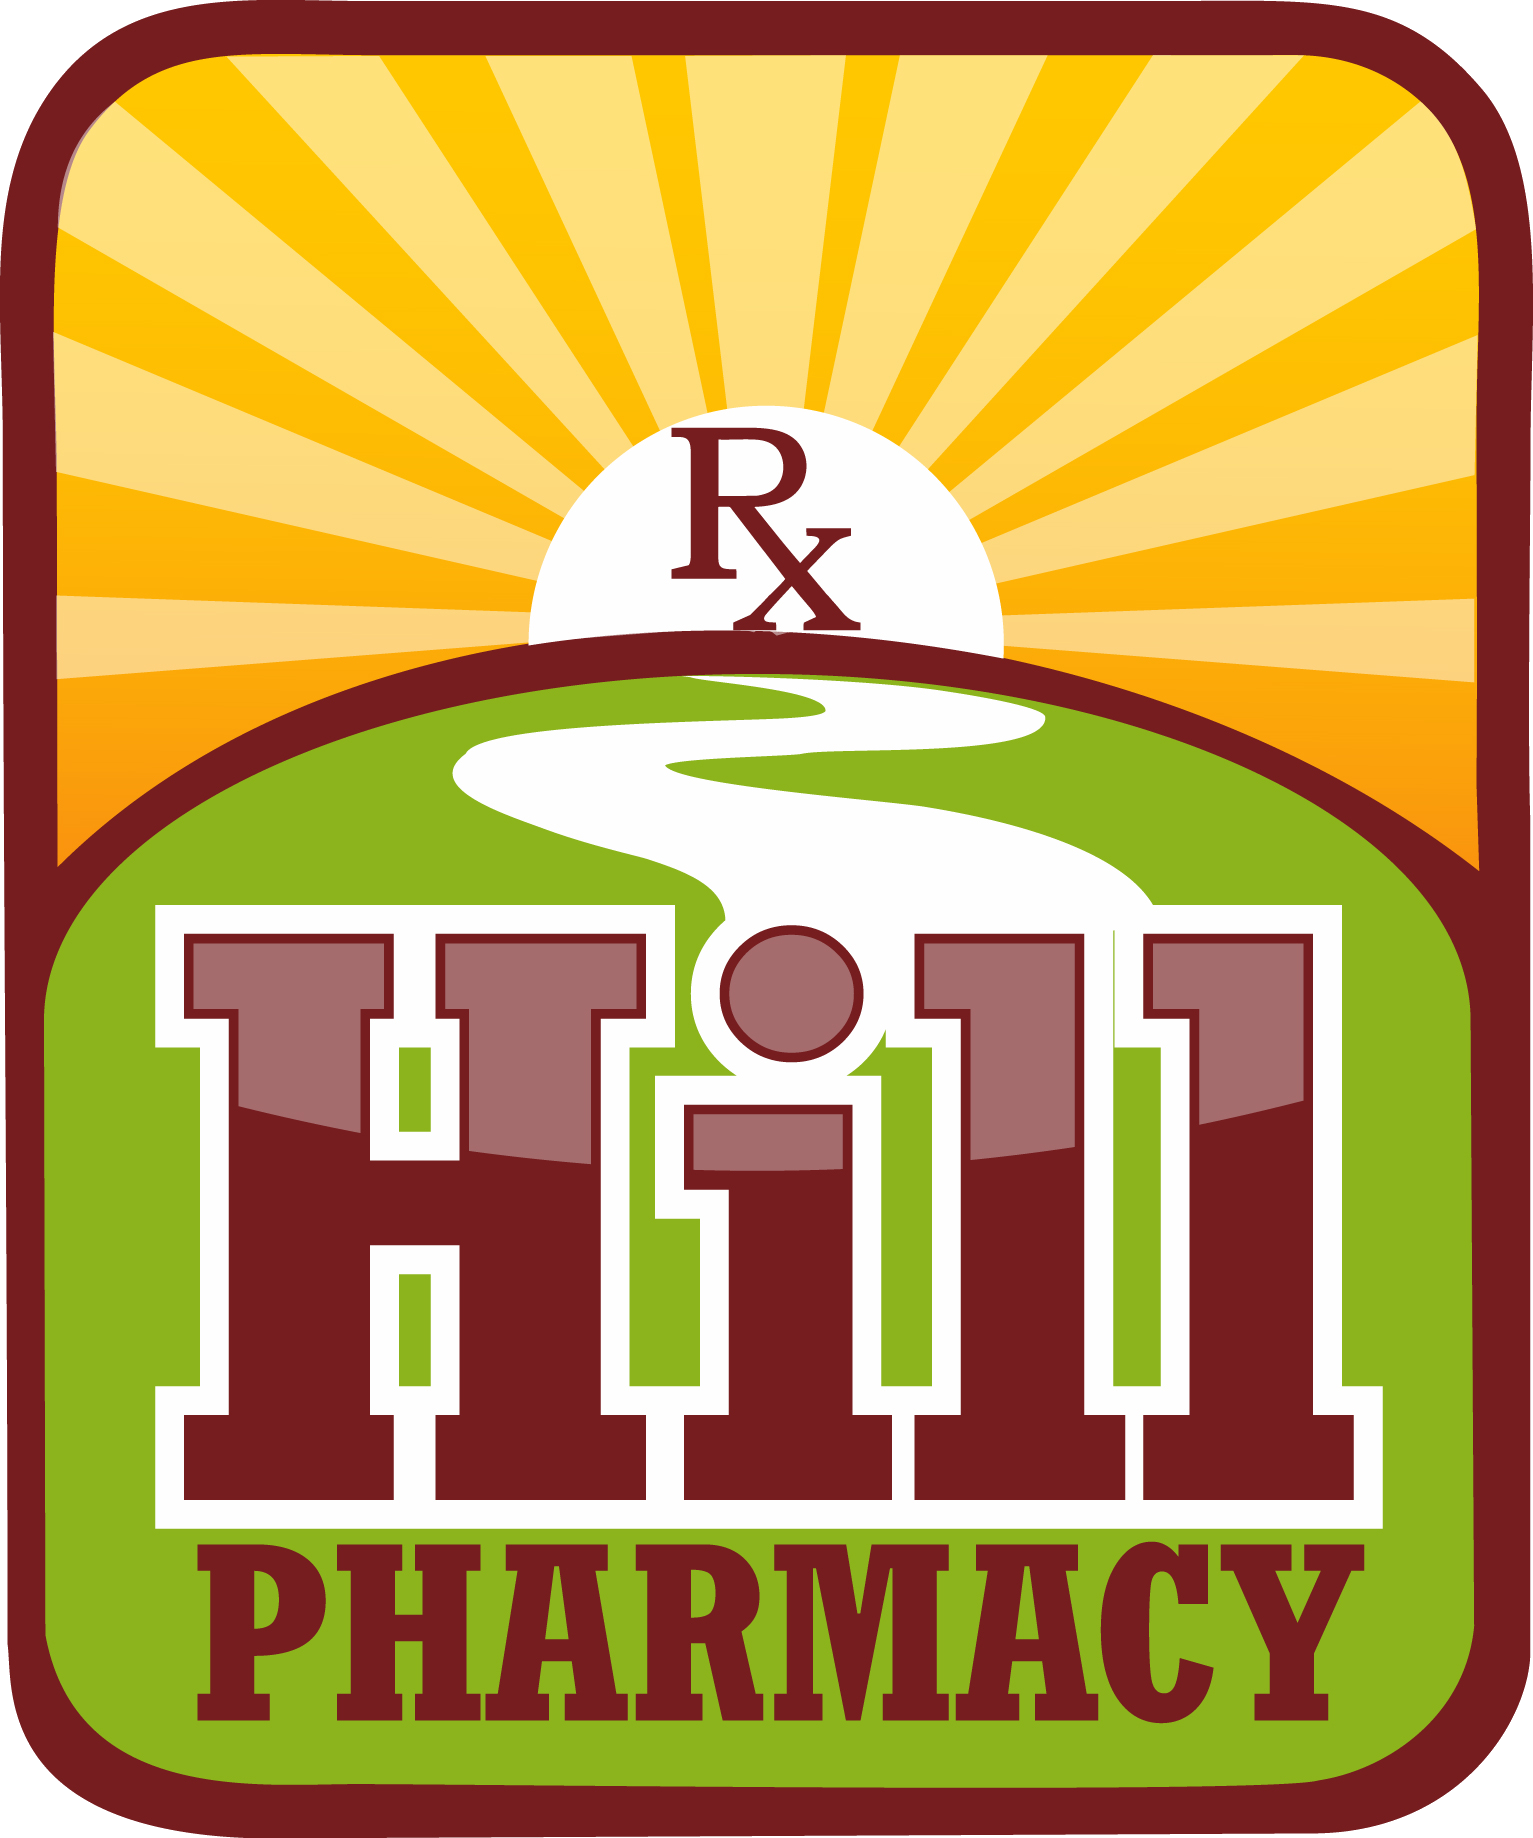 Hill Pharmacy